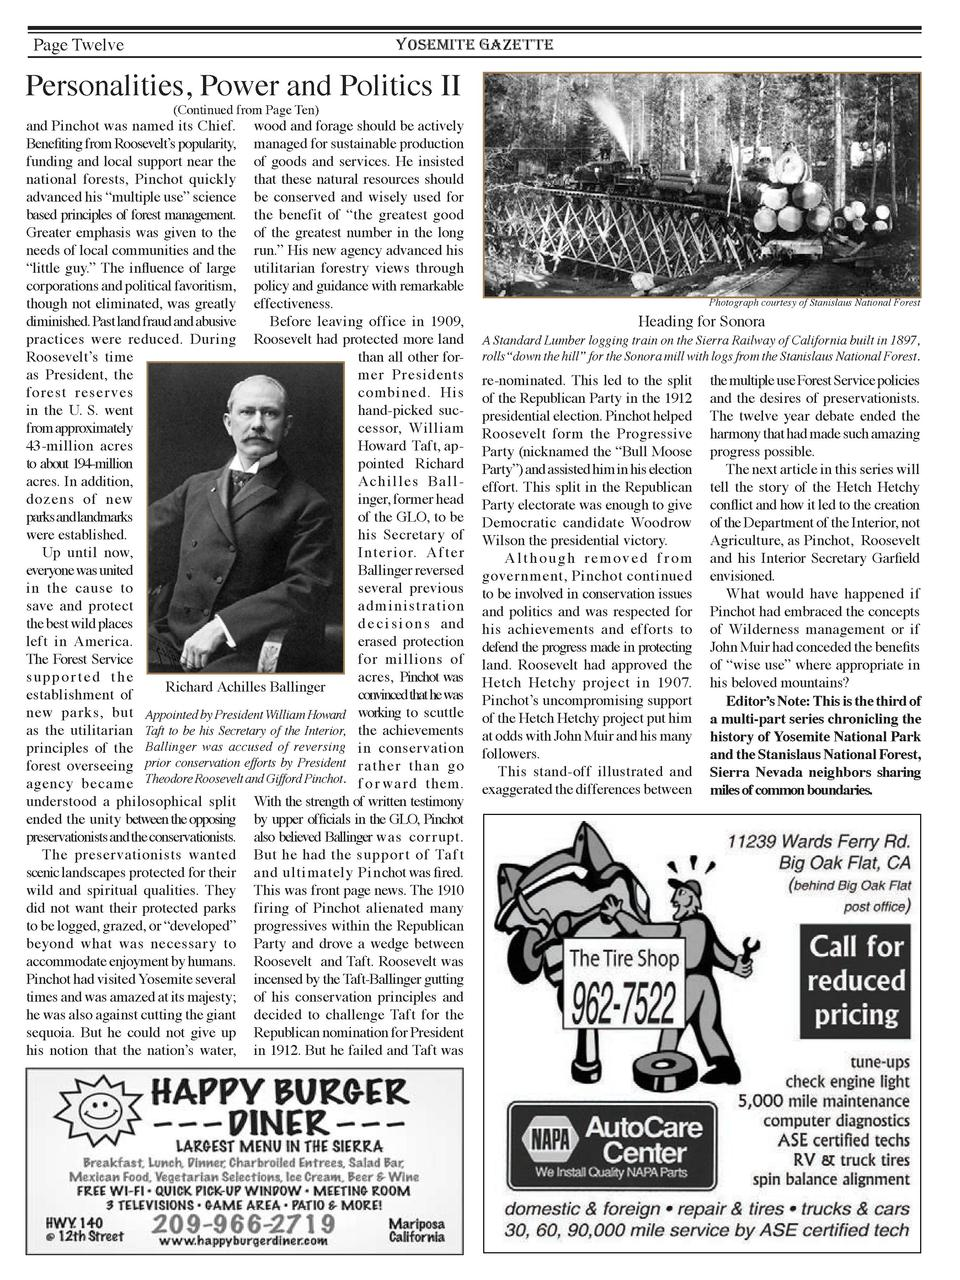 Page Twelve  YOSEMITE GAZETTE  Personalities, Power and Politics II  Continued from Page Ten   and Pinchot was named its C...